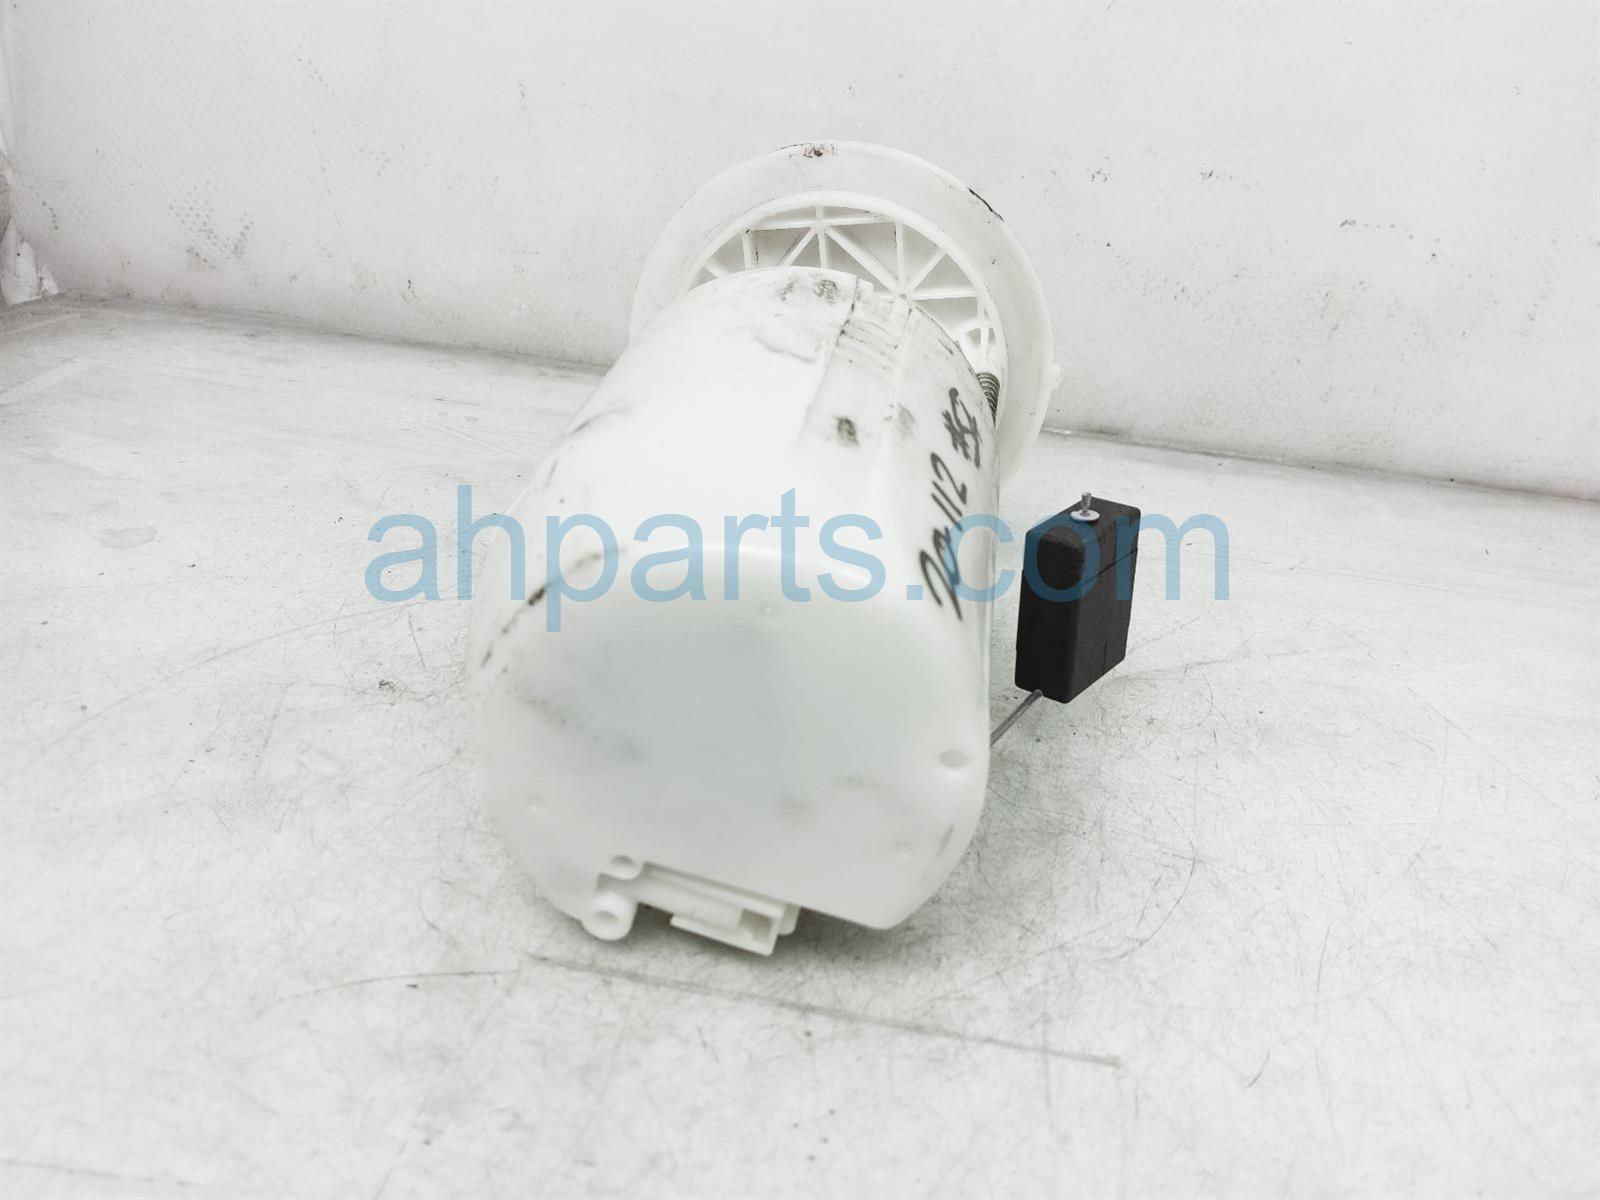 2013 Toyota Sienna Fuel Pump 77020 08050 Replacement